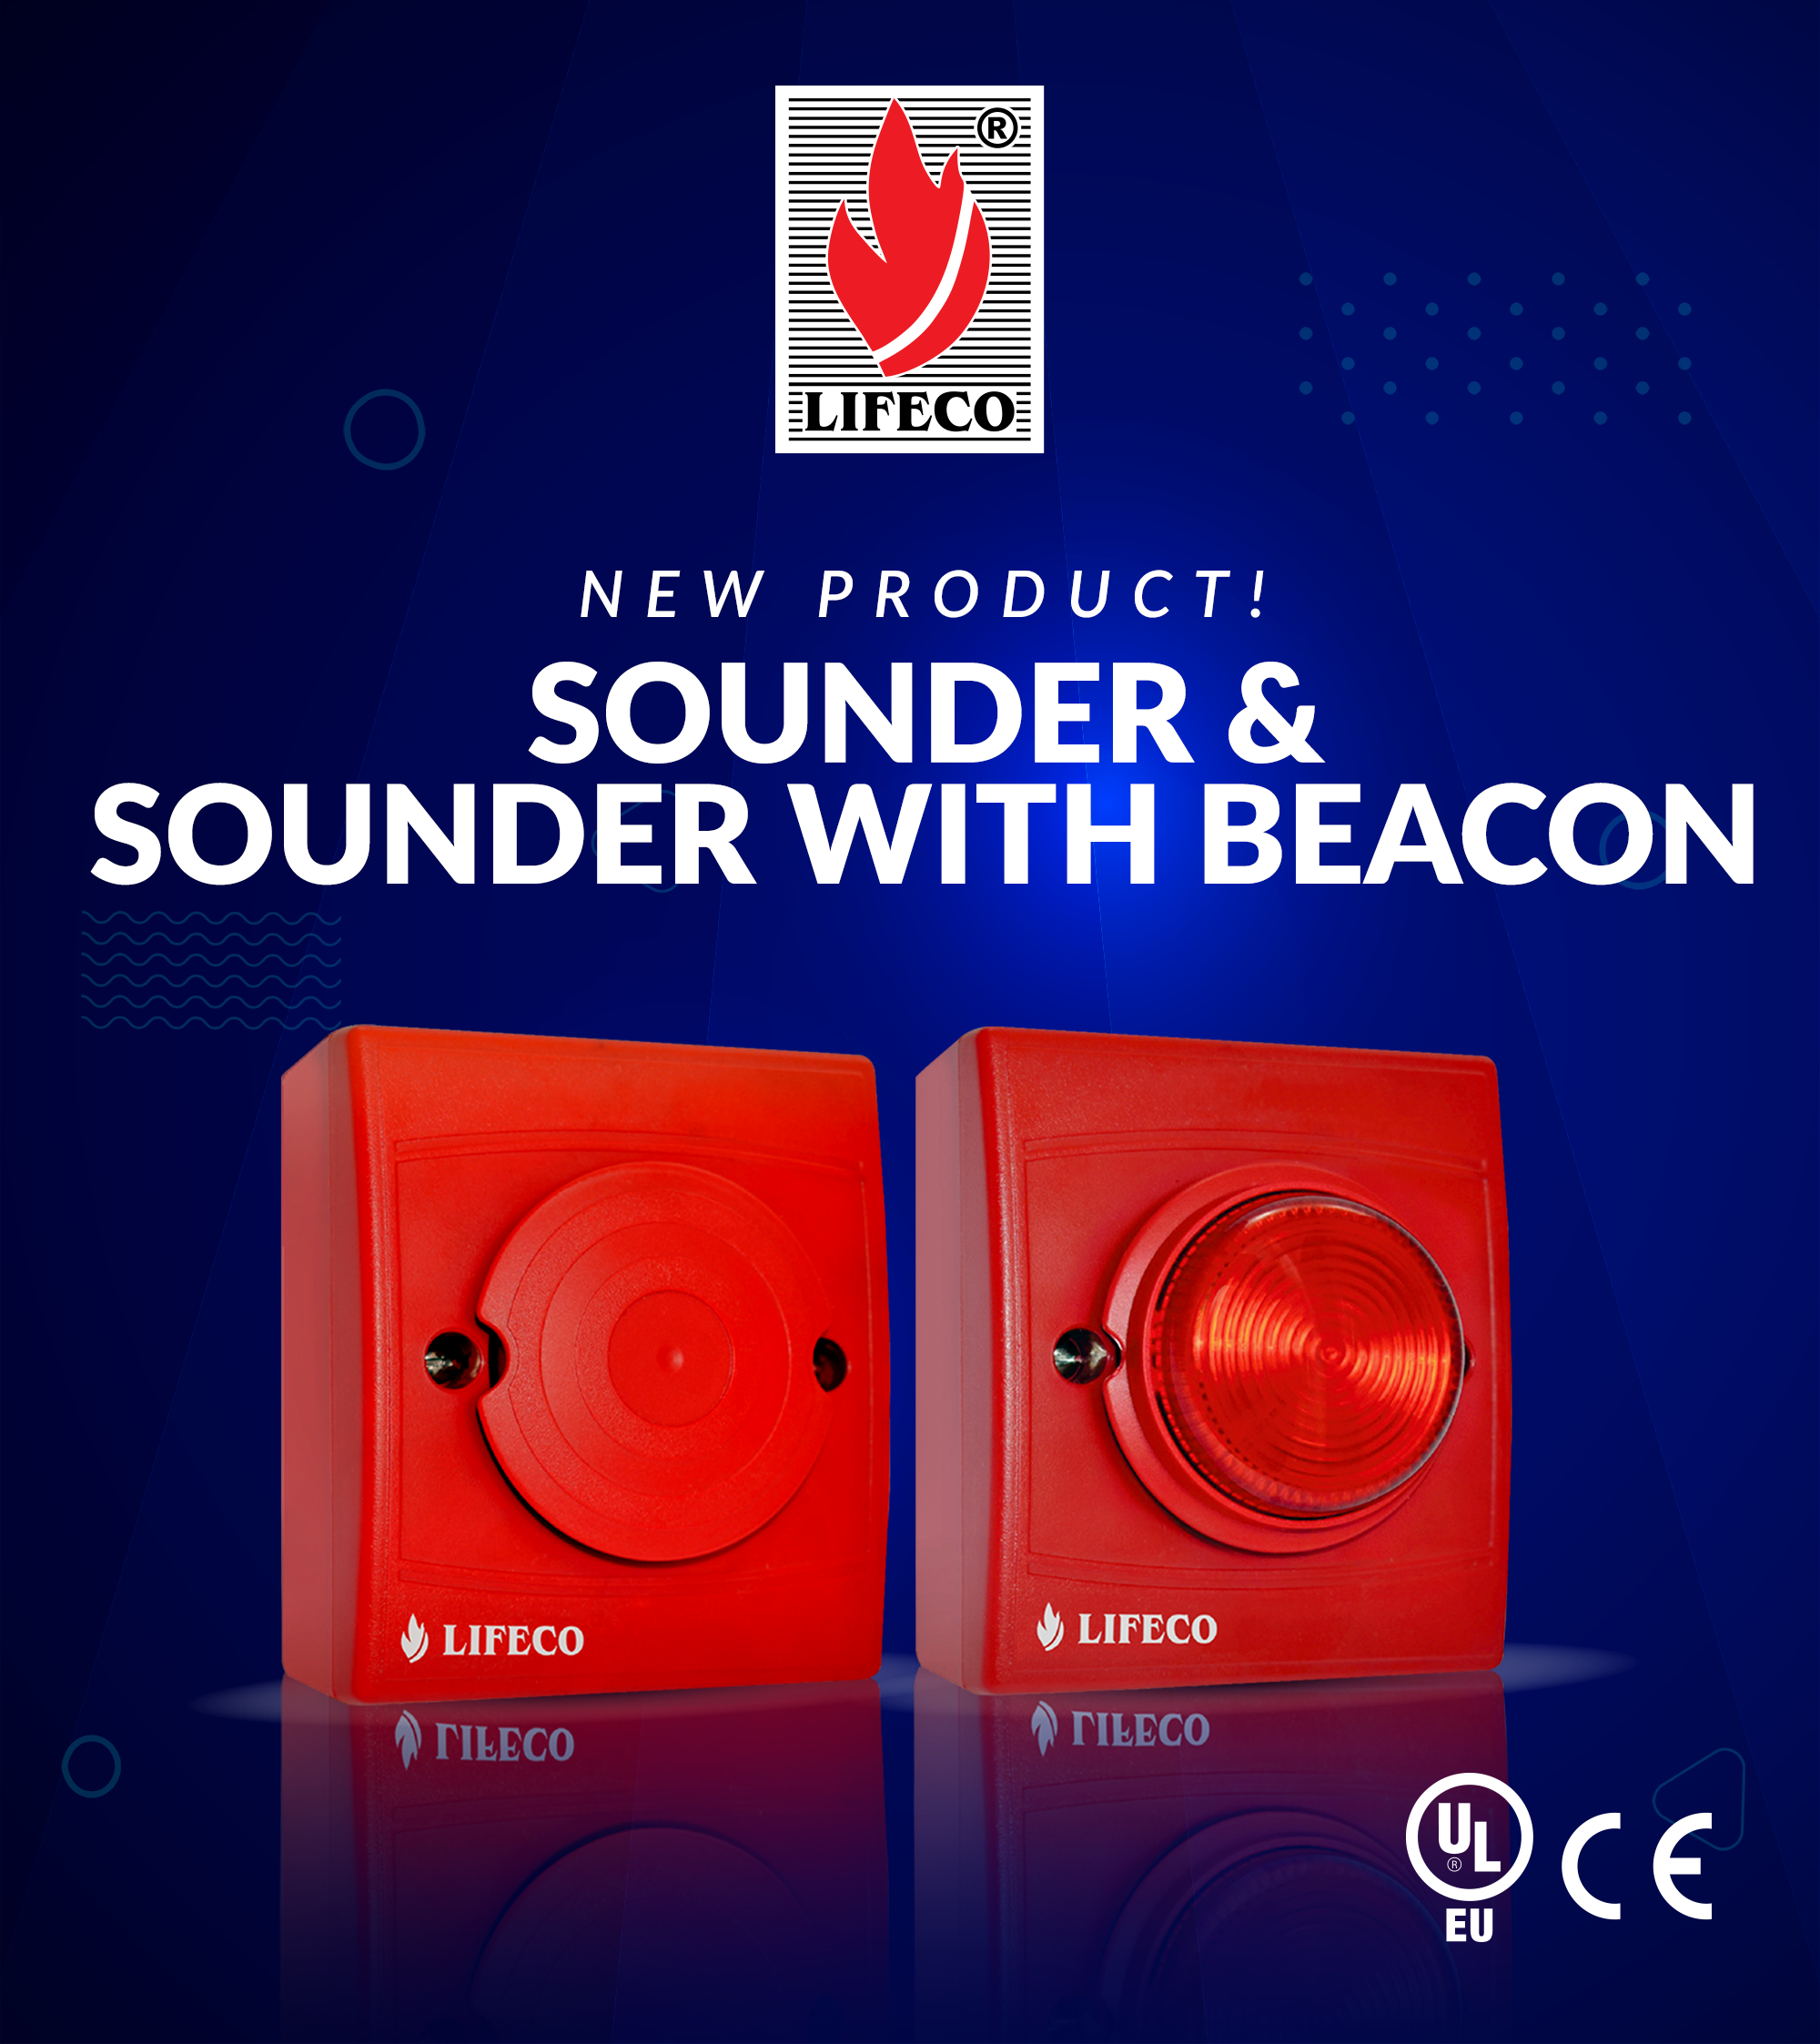 Sounder & Sounder with Beacon